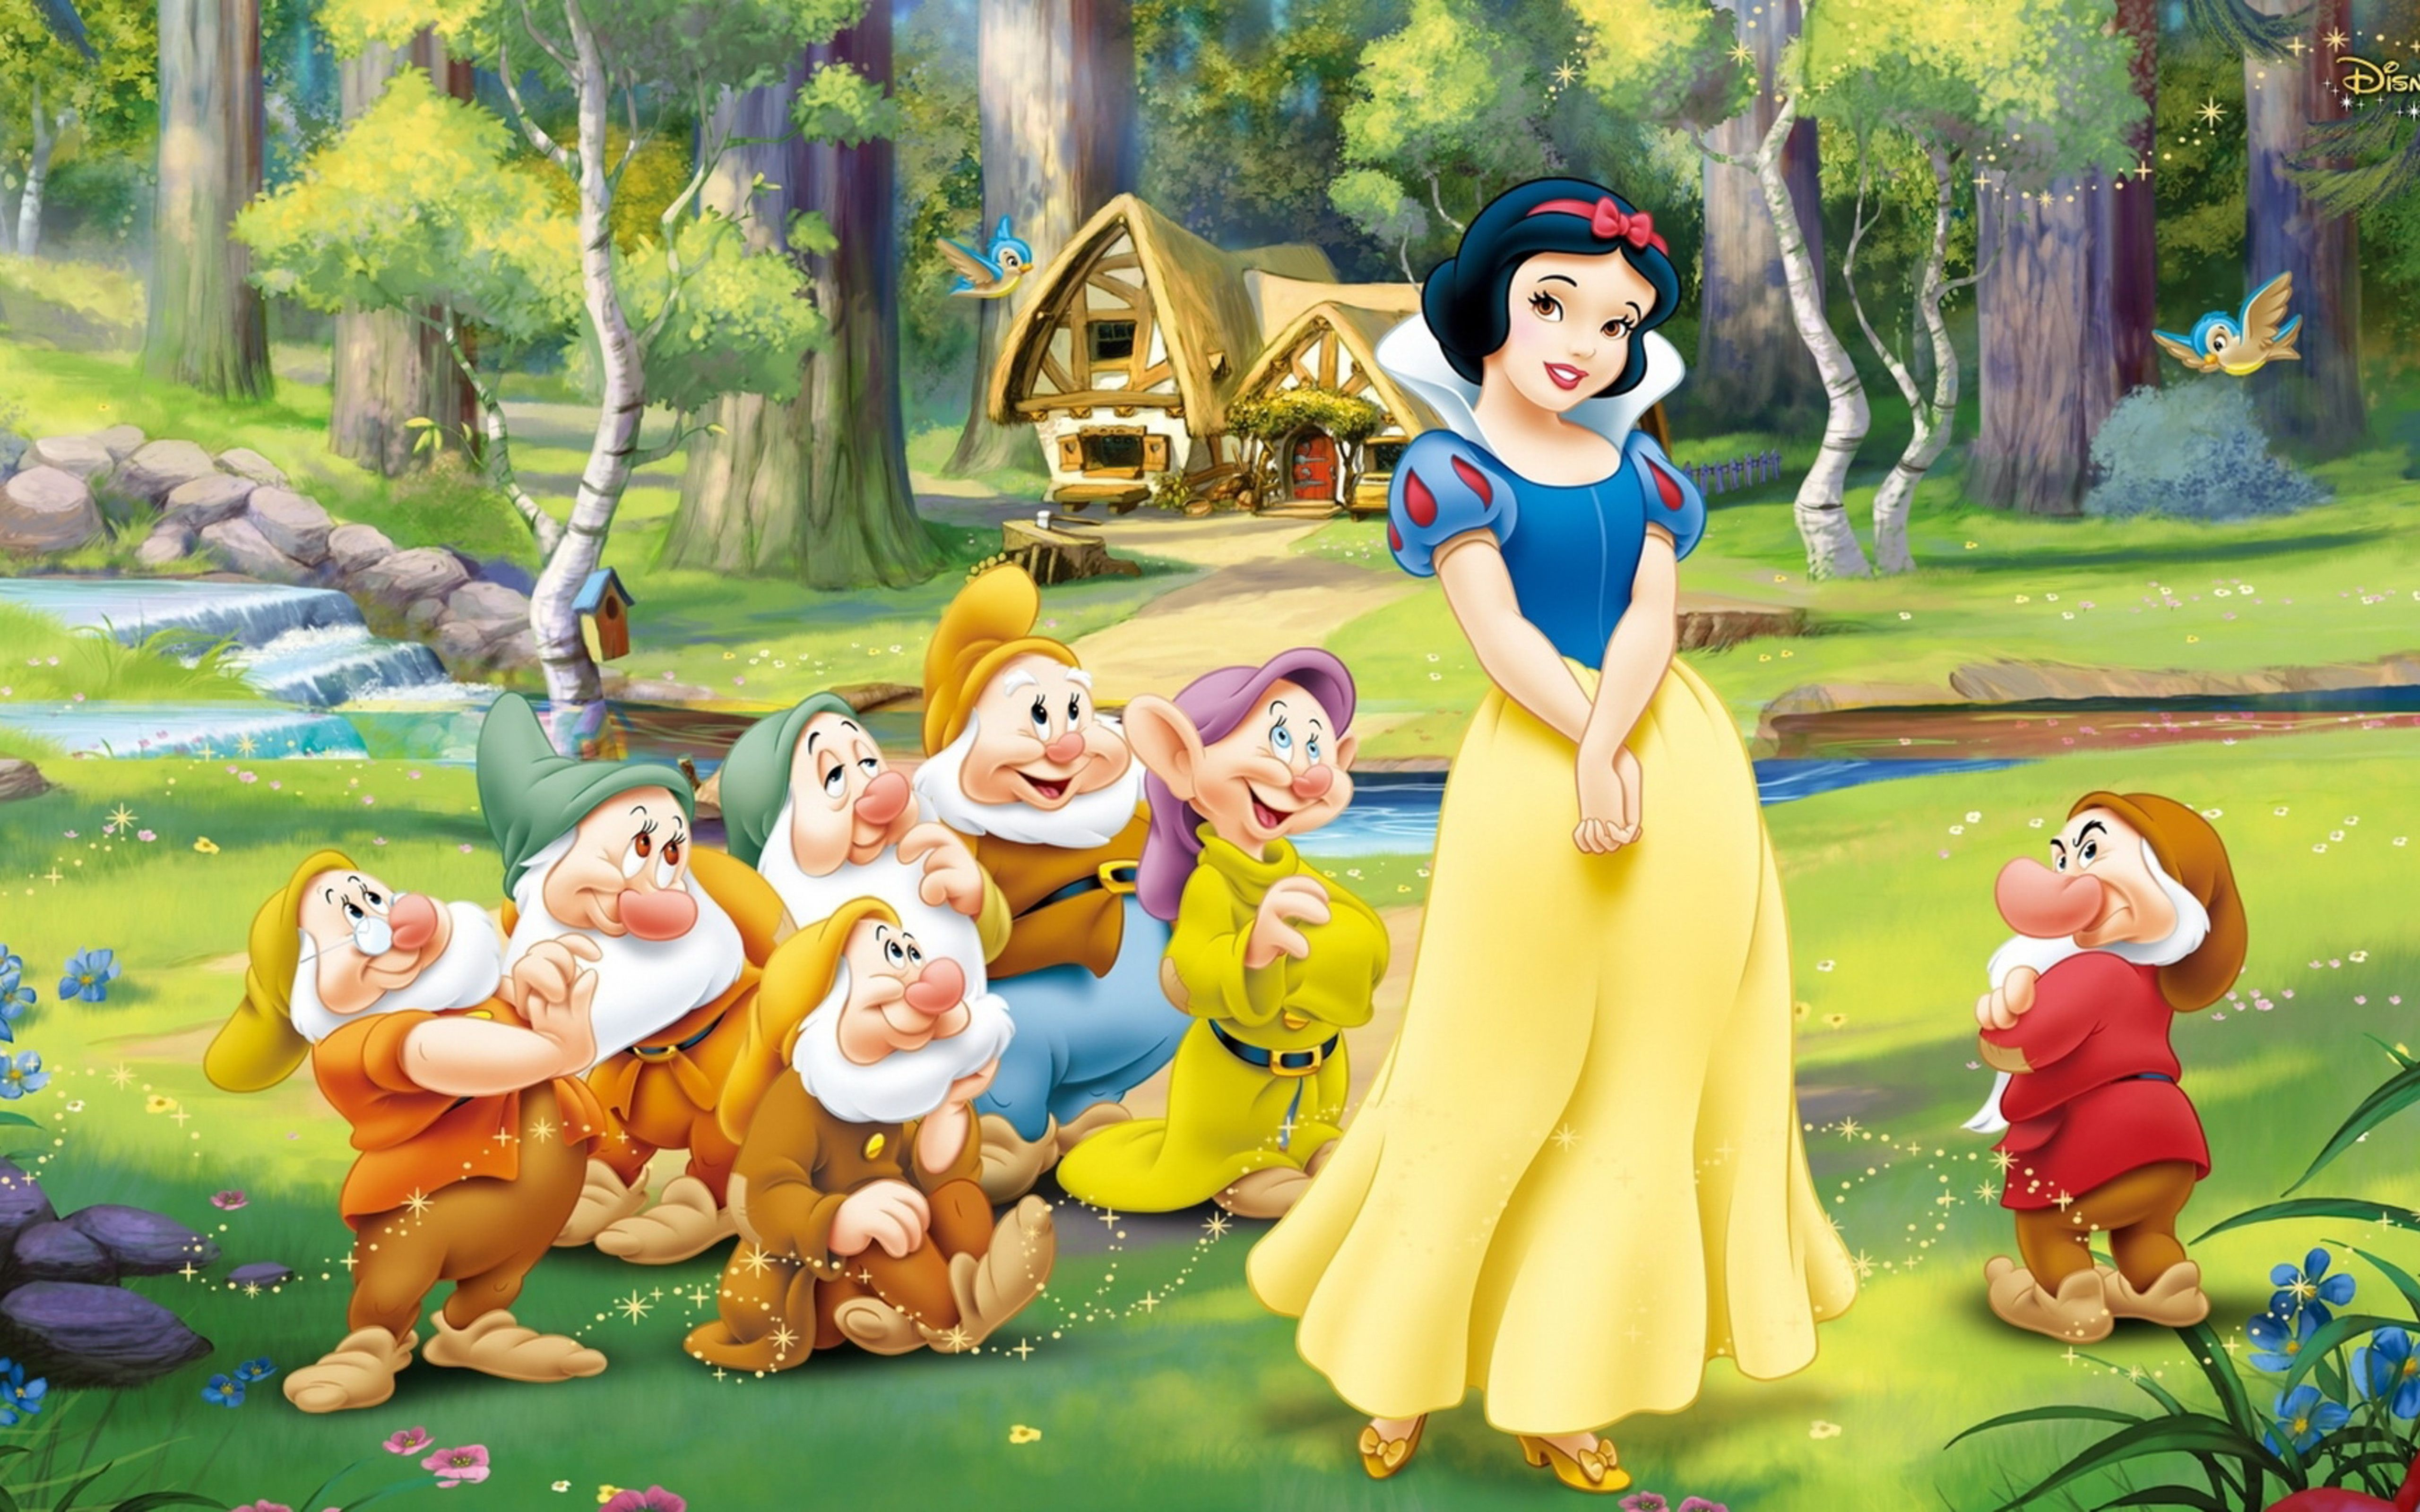 Wallpaper Download 5120x3200 Snow White And The Seven Dwarfs 3d Wallpaper Cartoon And Disney Princess Snow White Cartoon Wallpaper Disney Cartoon Characters